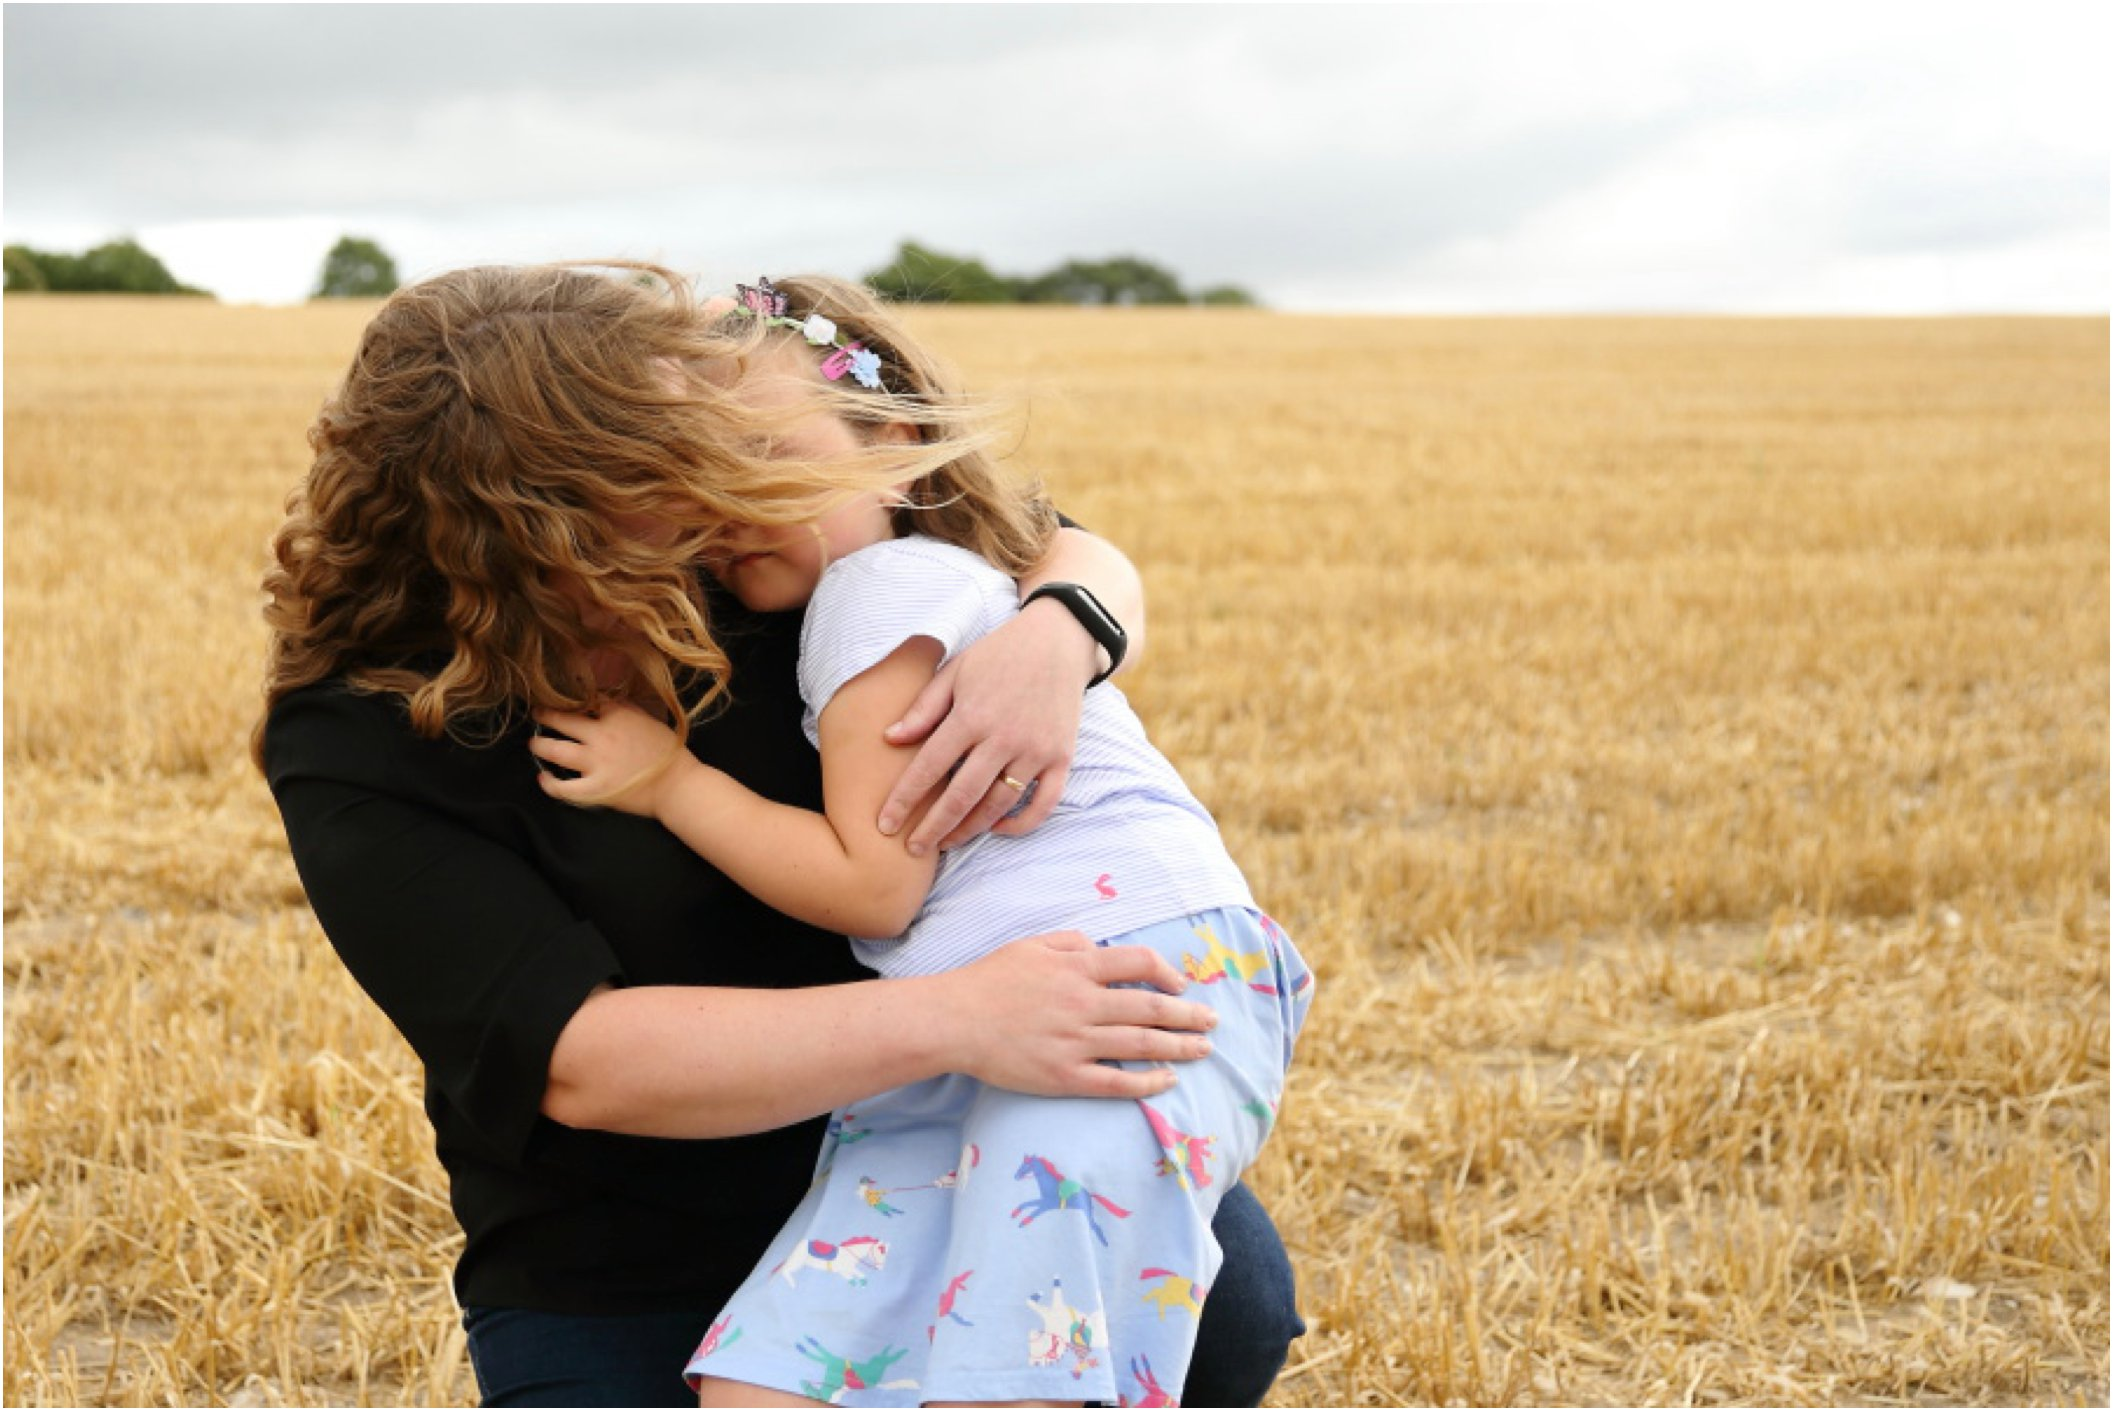 beautiful mum and daughter moment on childrens photography session, in farm field Cambridgeshire